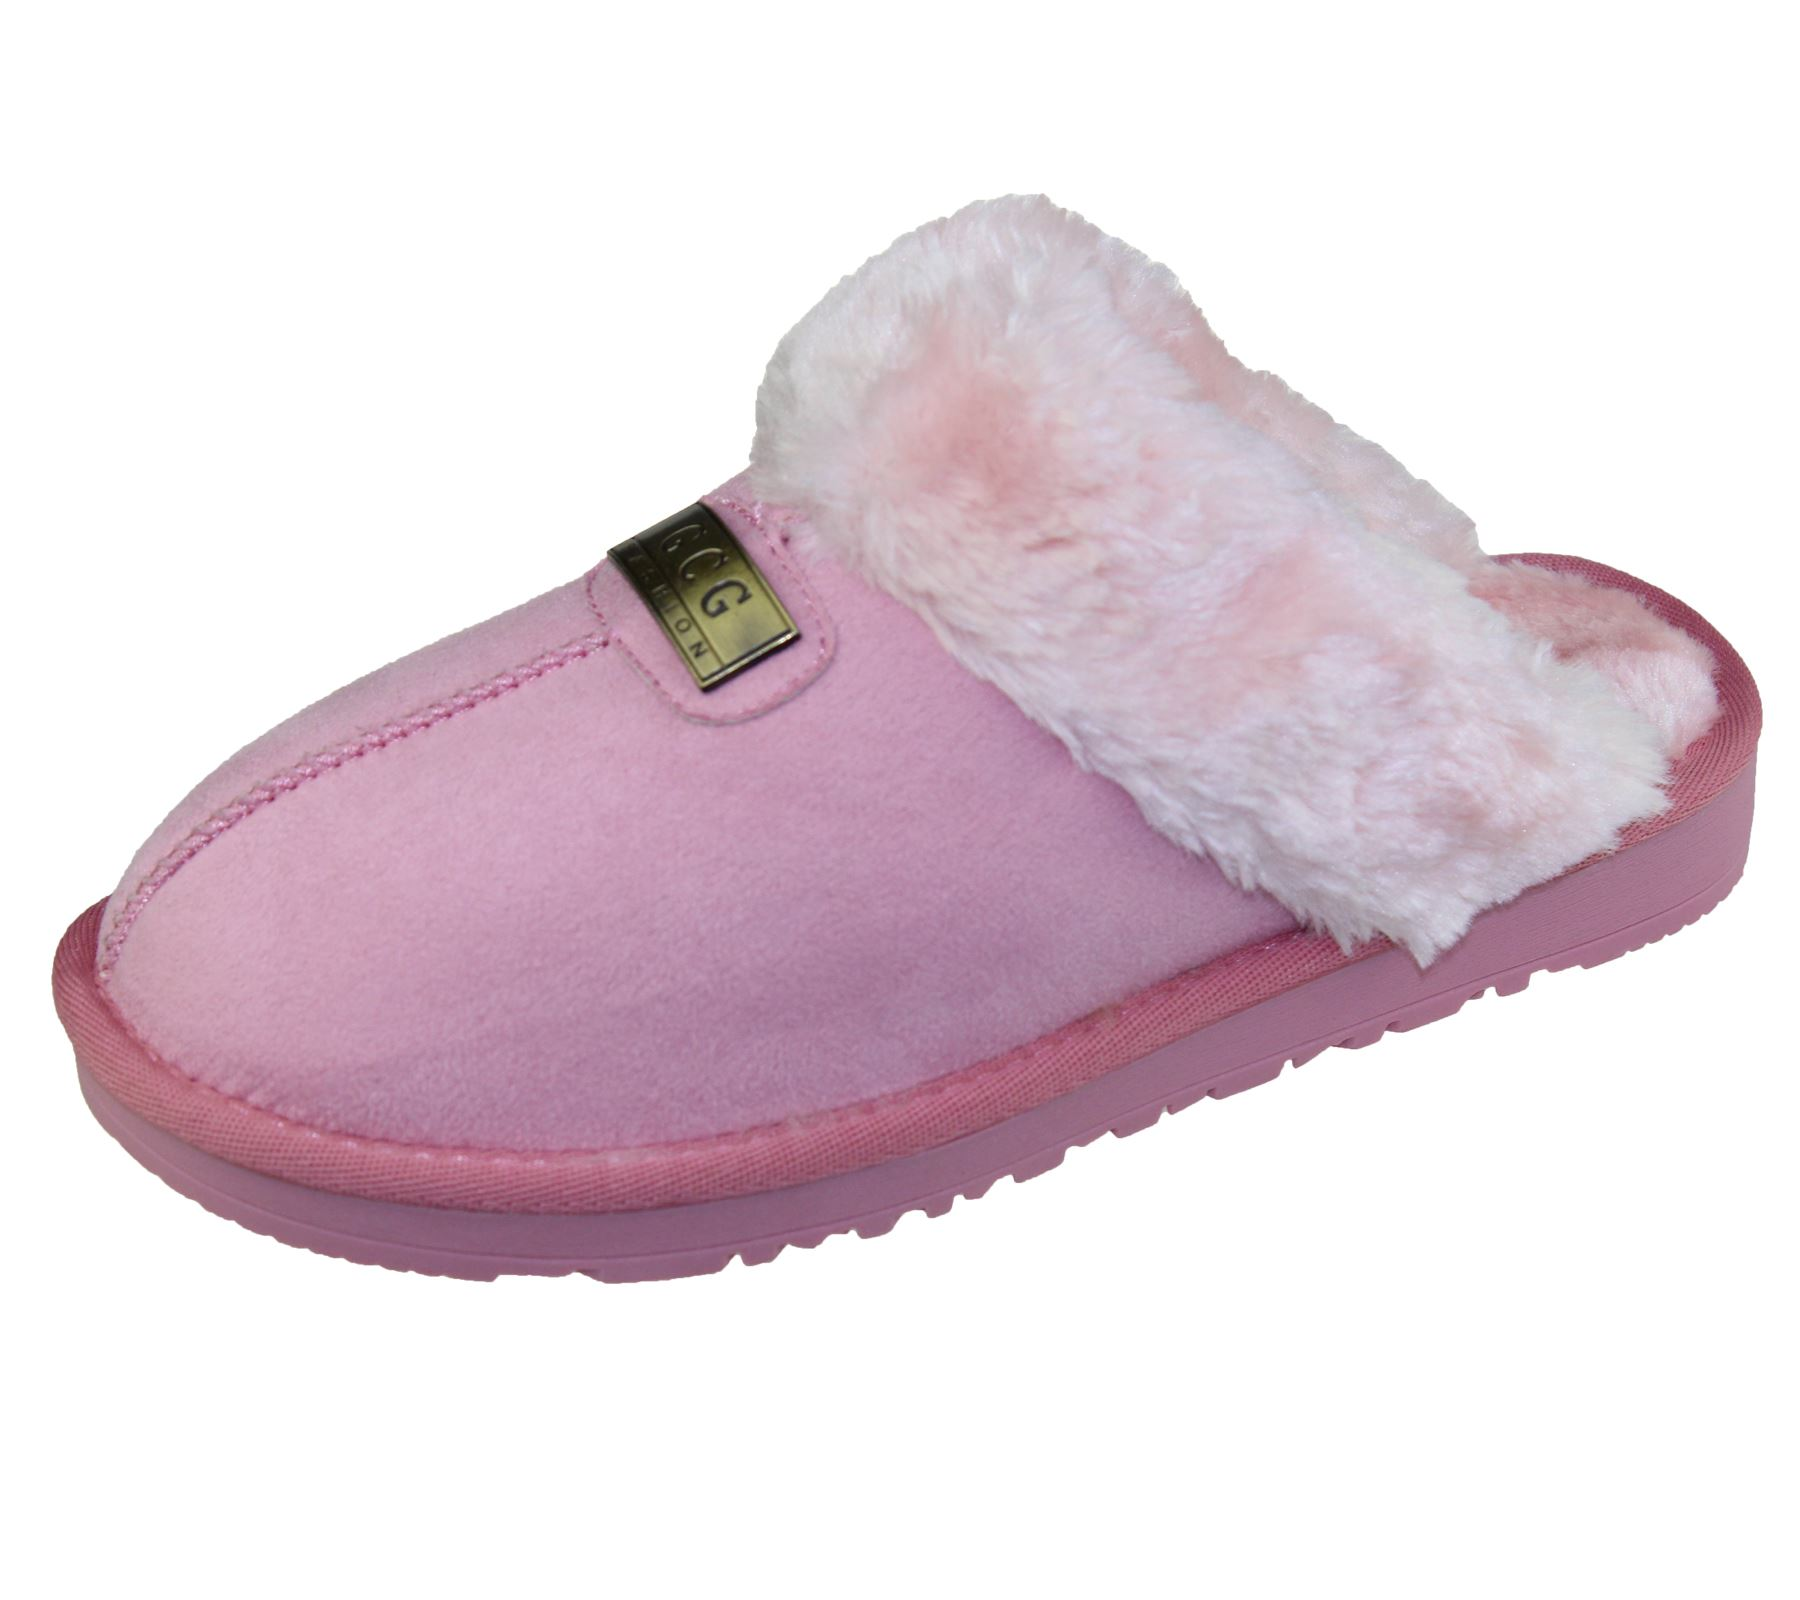 Womens-Fur-Lined-Slippers-Ladies-Mules-Non-Slip-Rubber-Sole-Shoes miniatura 31